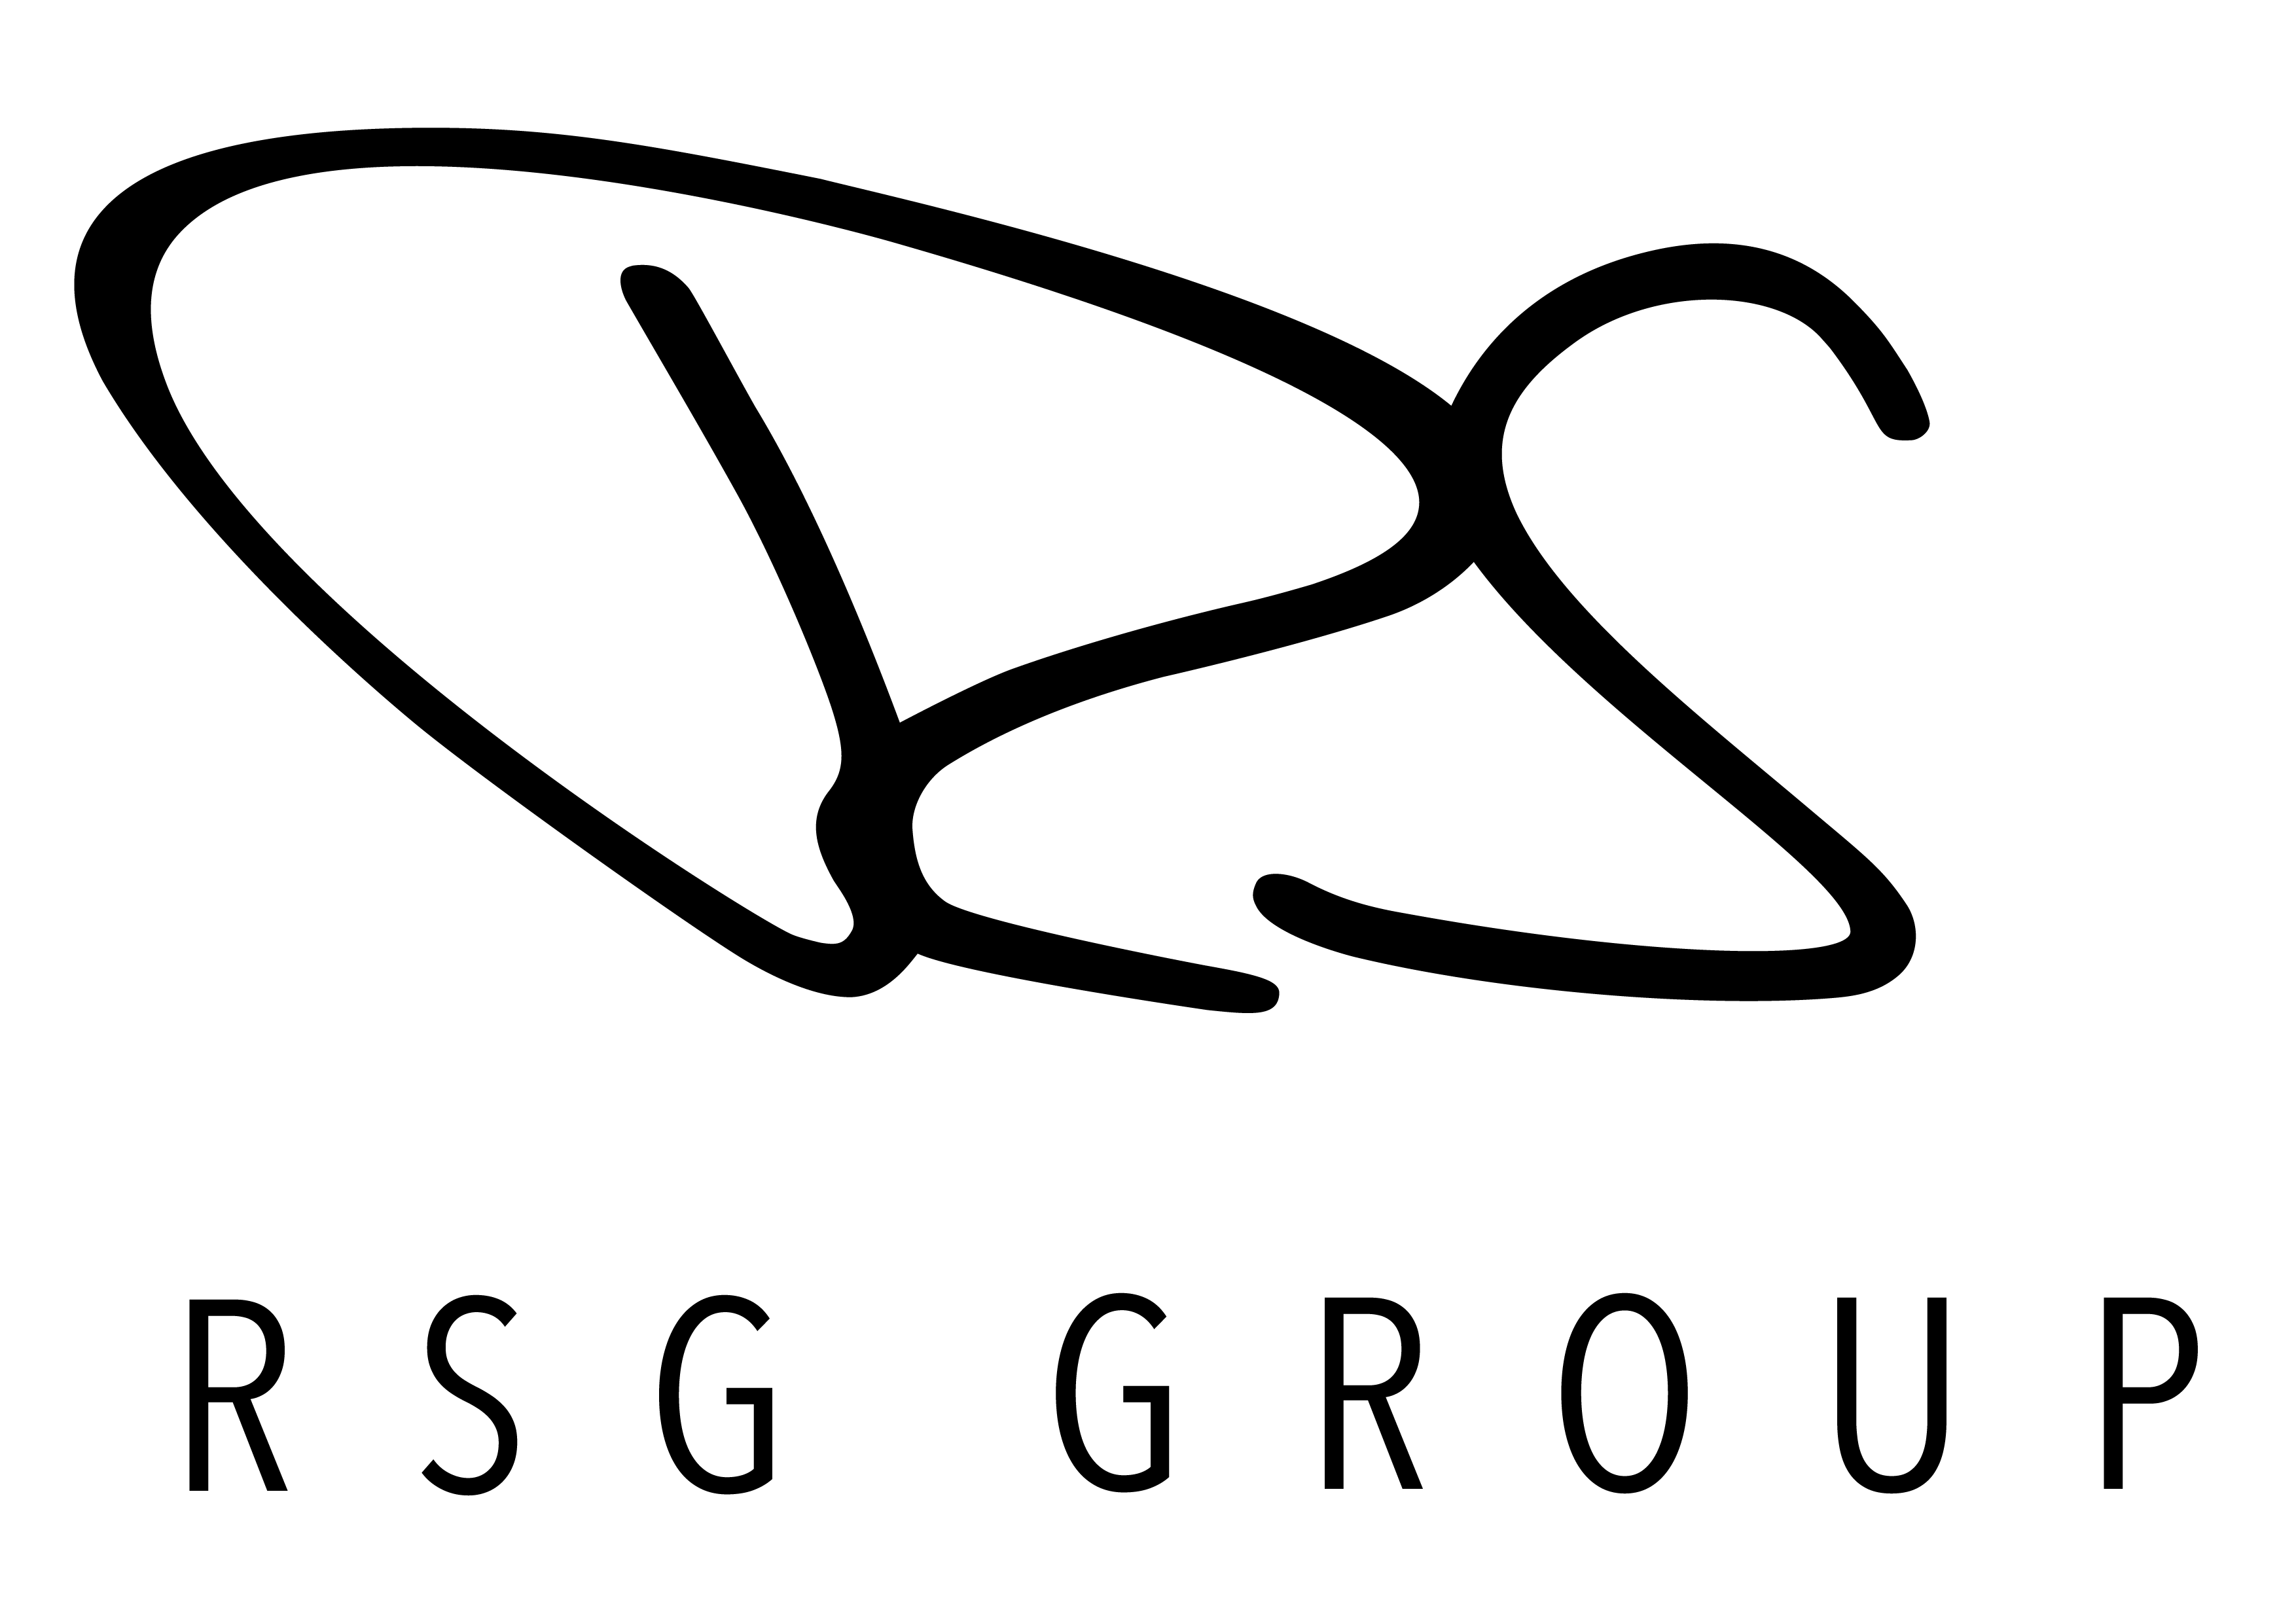 RSG Group GmbH